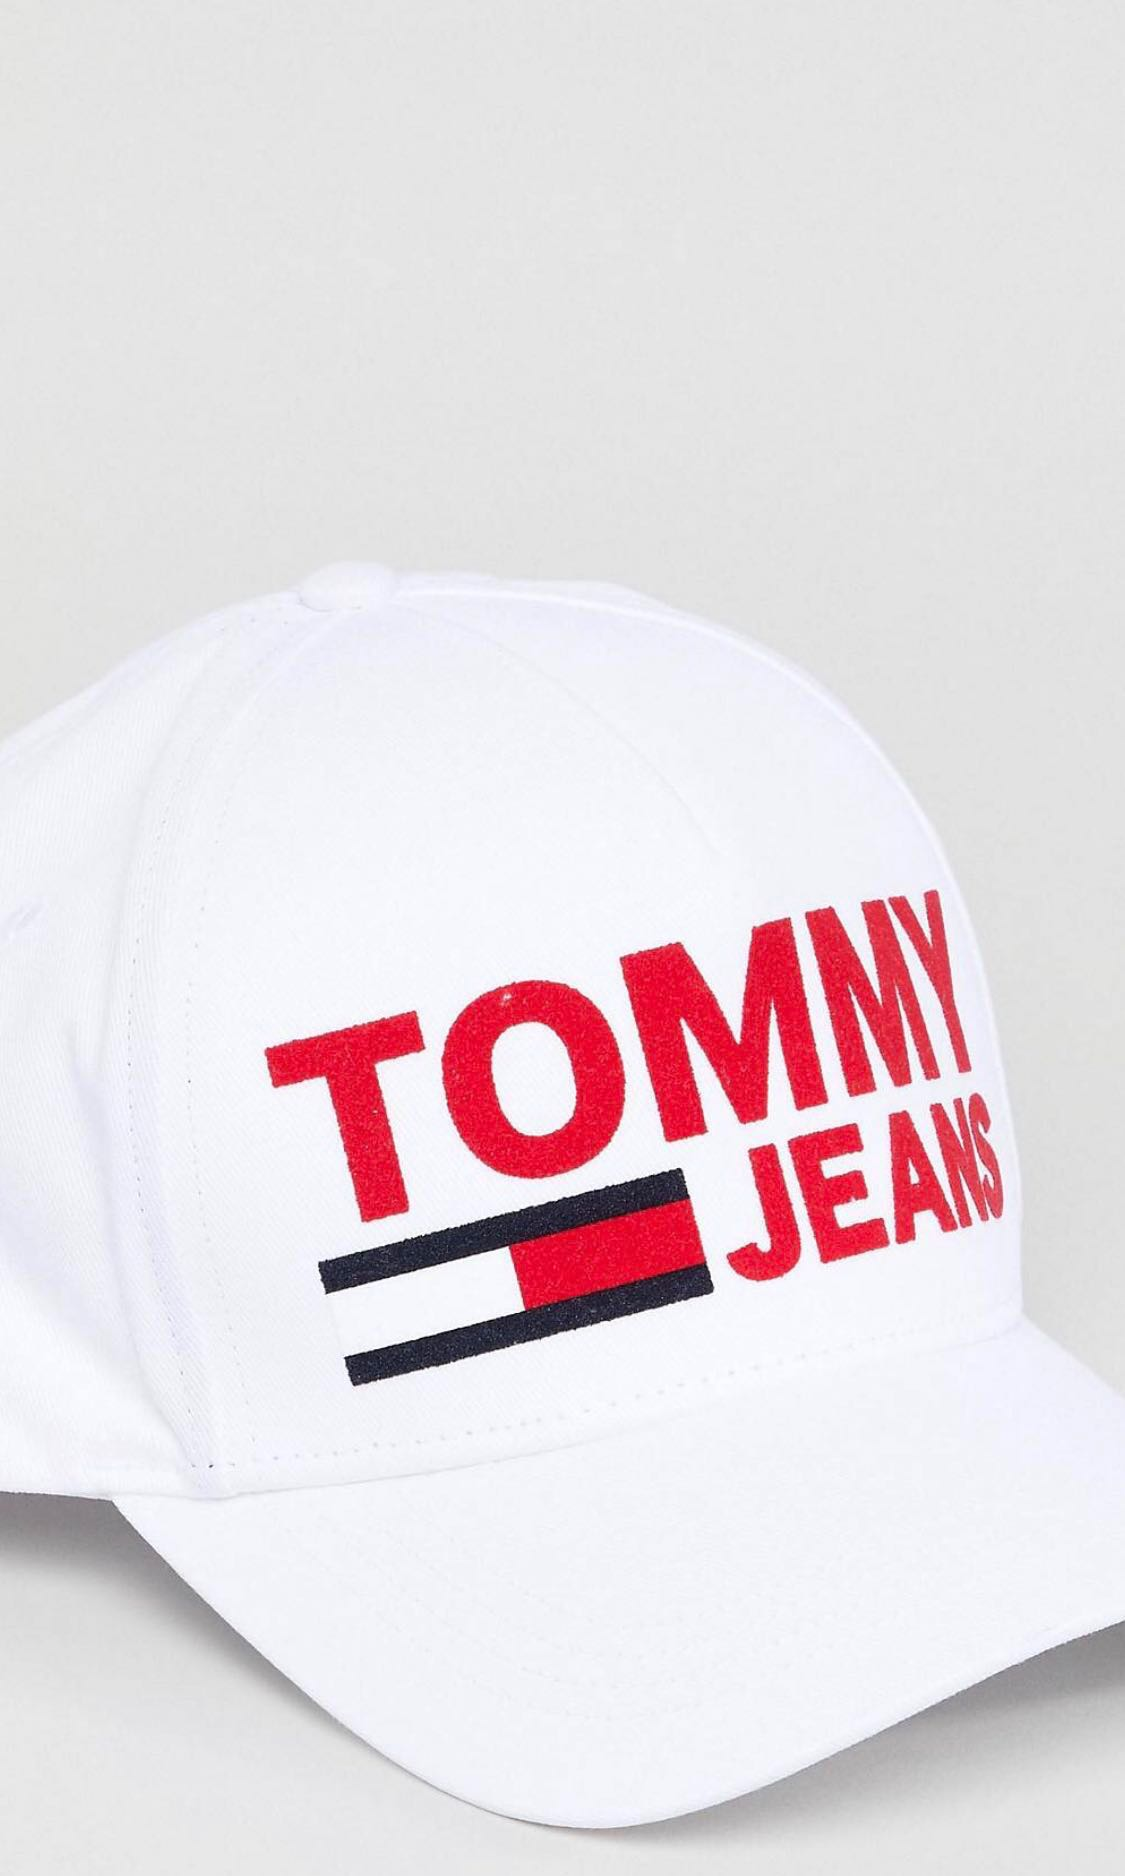 32a9c480 Tommy Jeans Cap in White, Men's Fashion, Accessories, Caps & Hats on ...